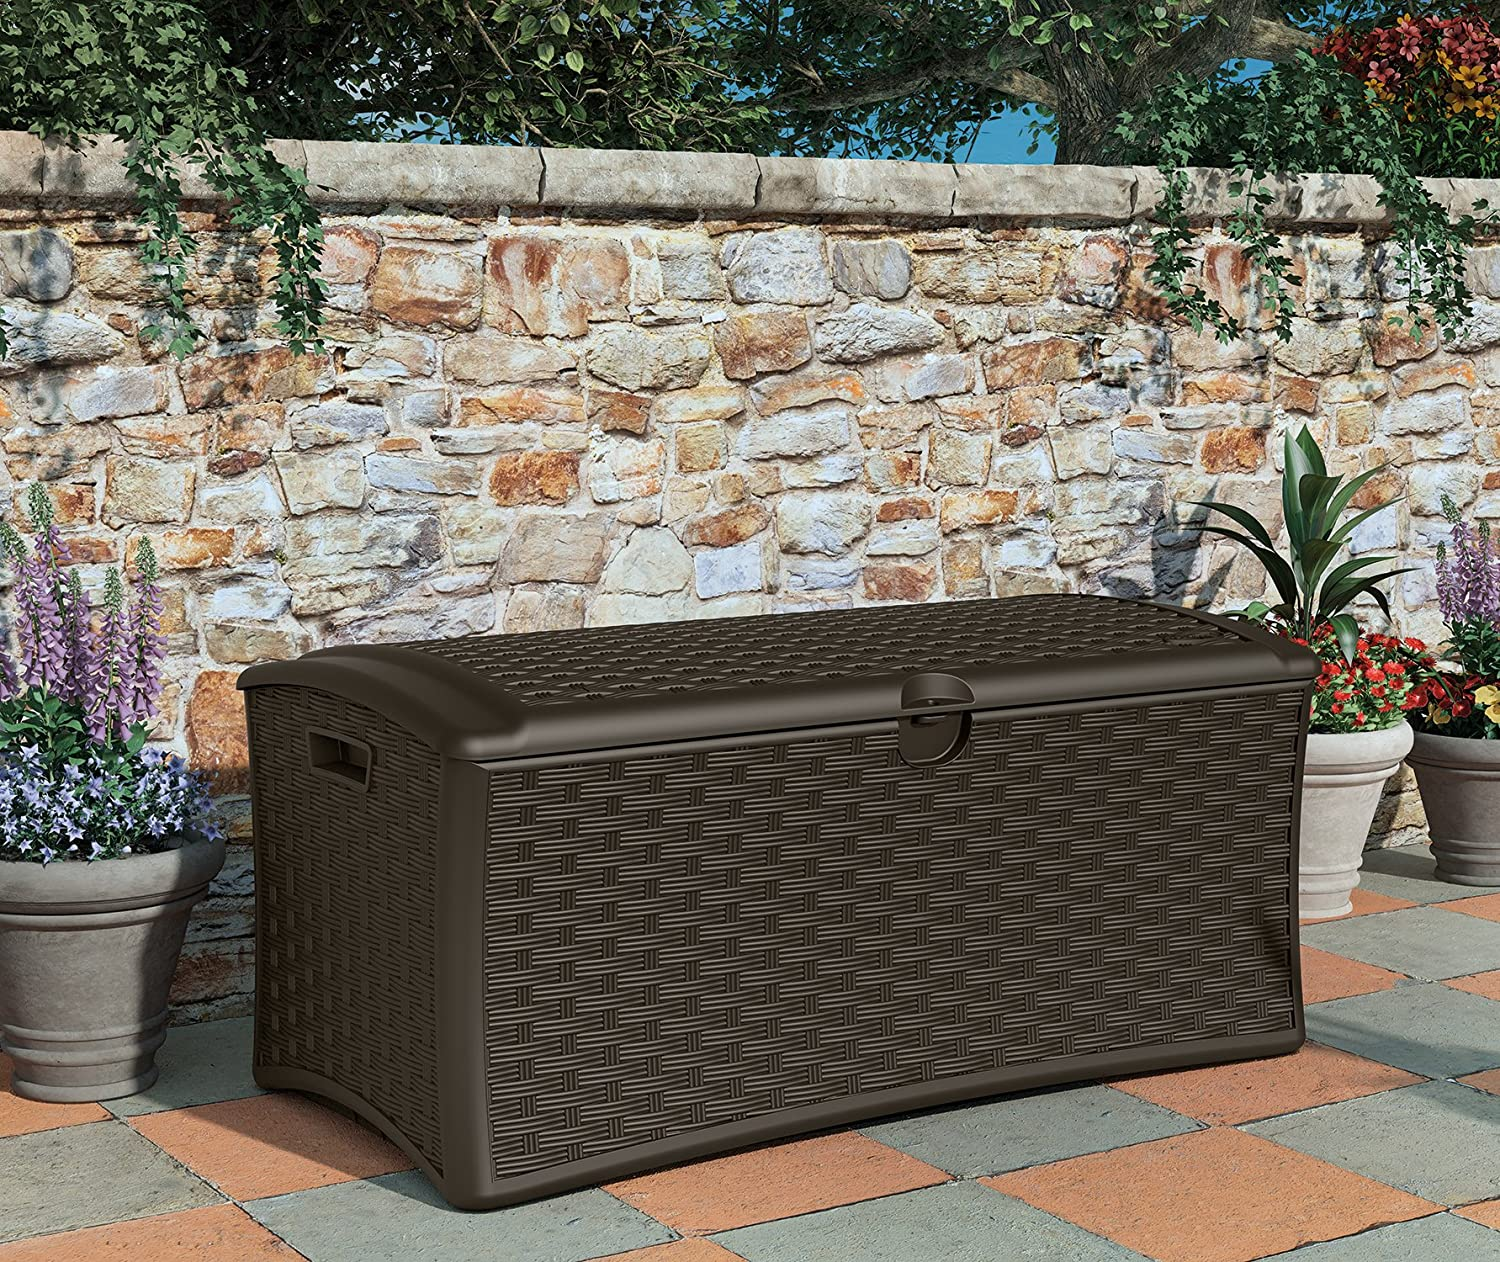 Backyard Waterproof Outdoor Storage Container for Toys Porch Yard Tools Store Items on Deck Brown Suncast 72 Gallon Resin Wicker Patio Storage Box Furniture